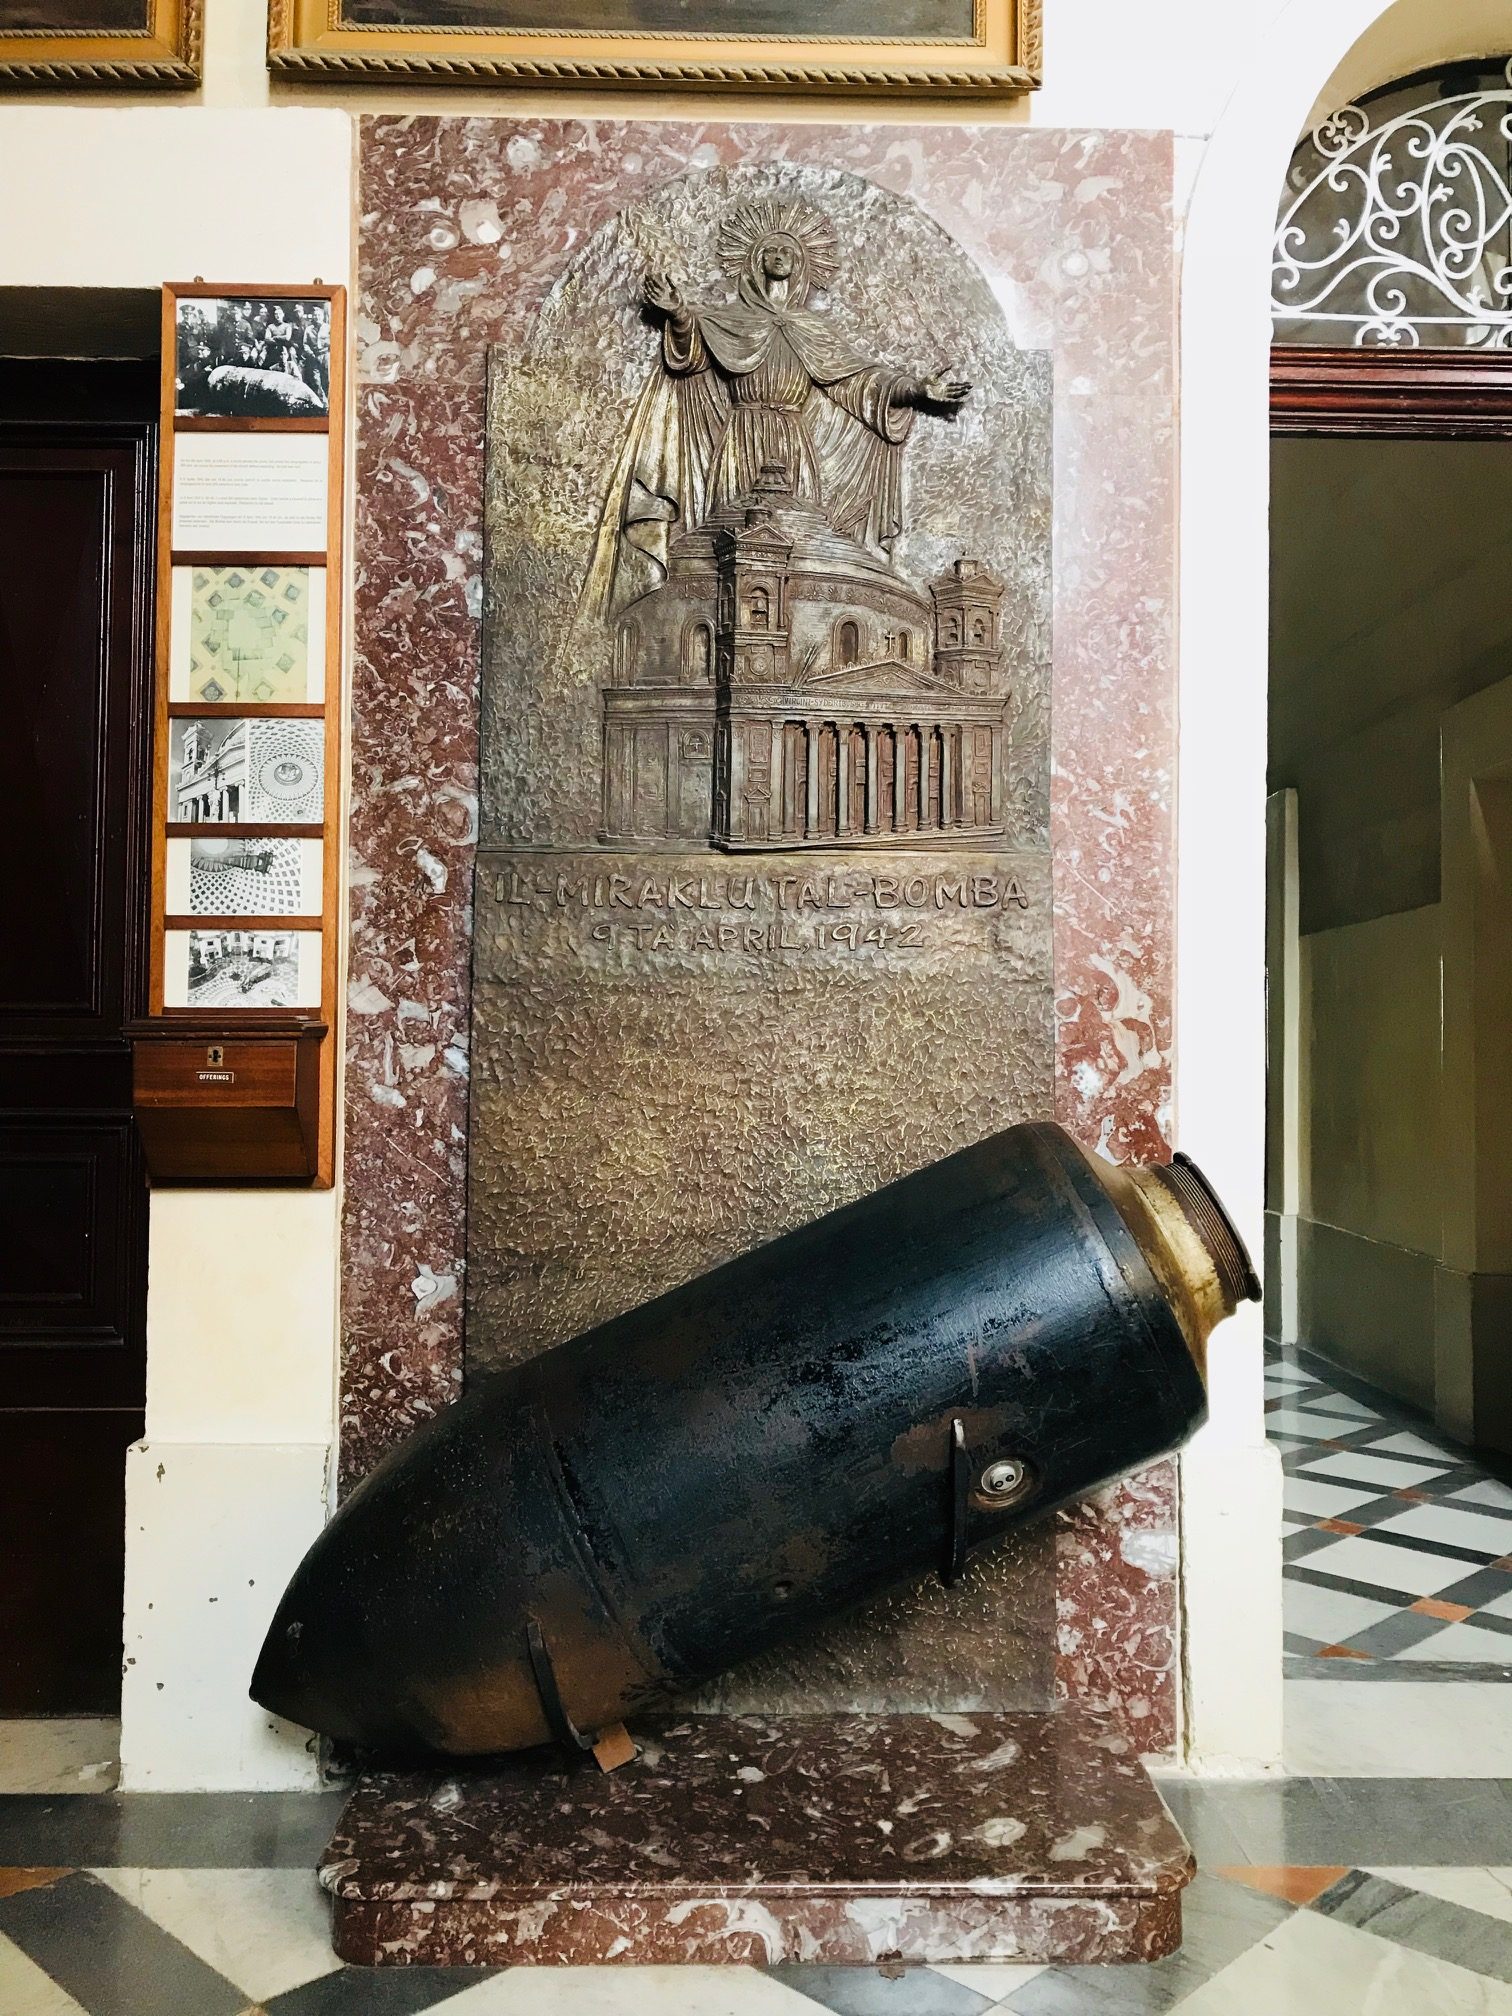 Replica of the Bomb